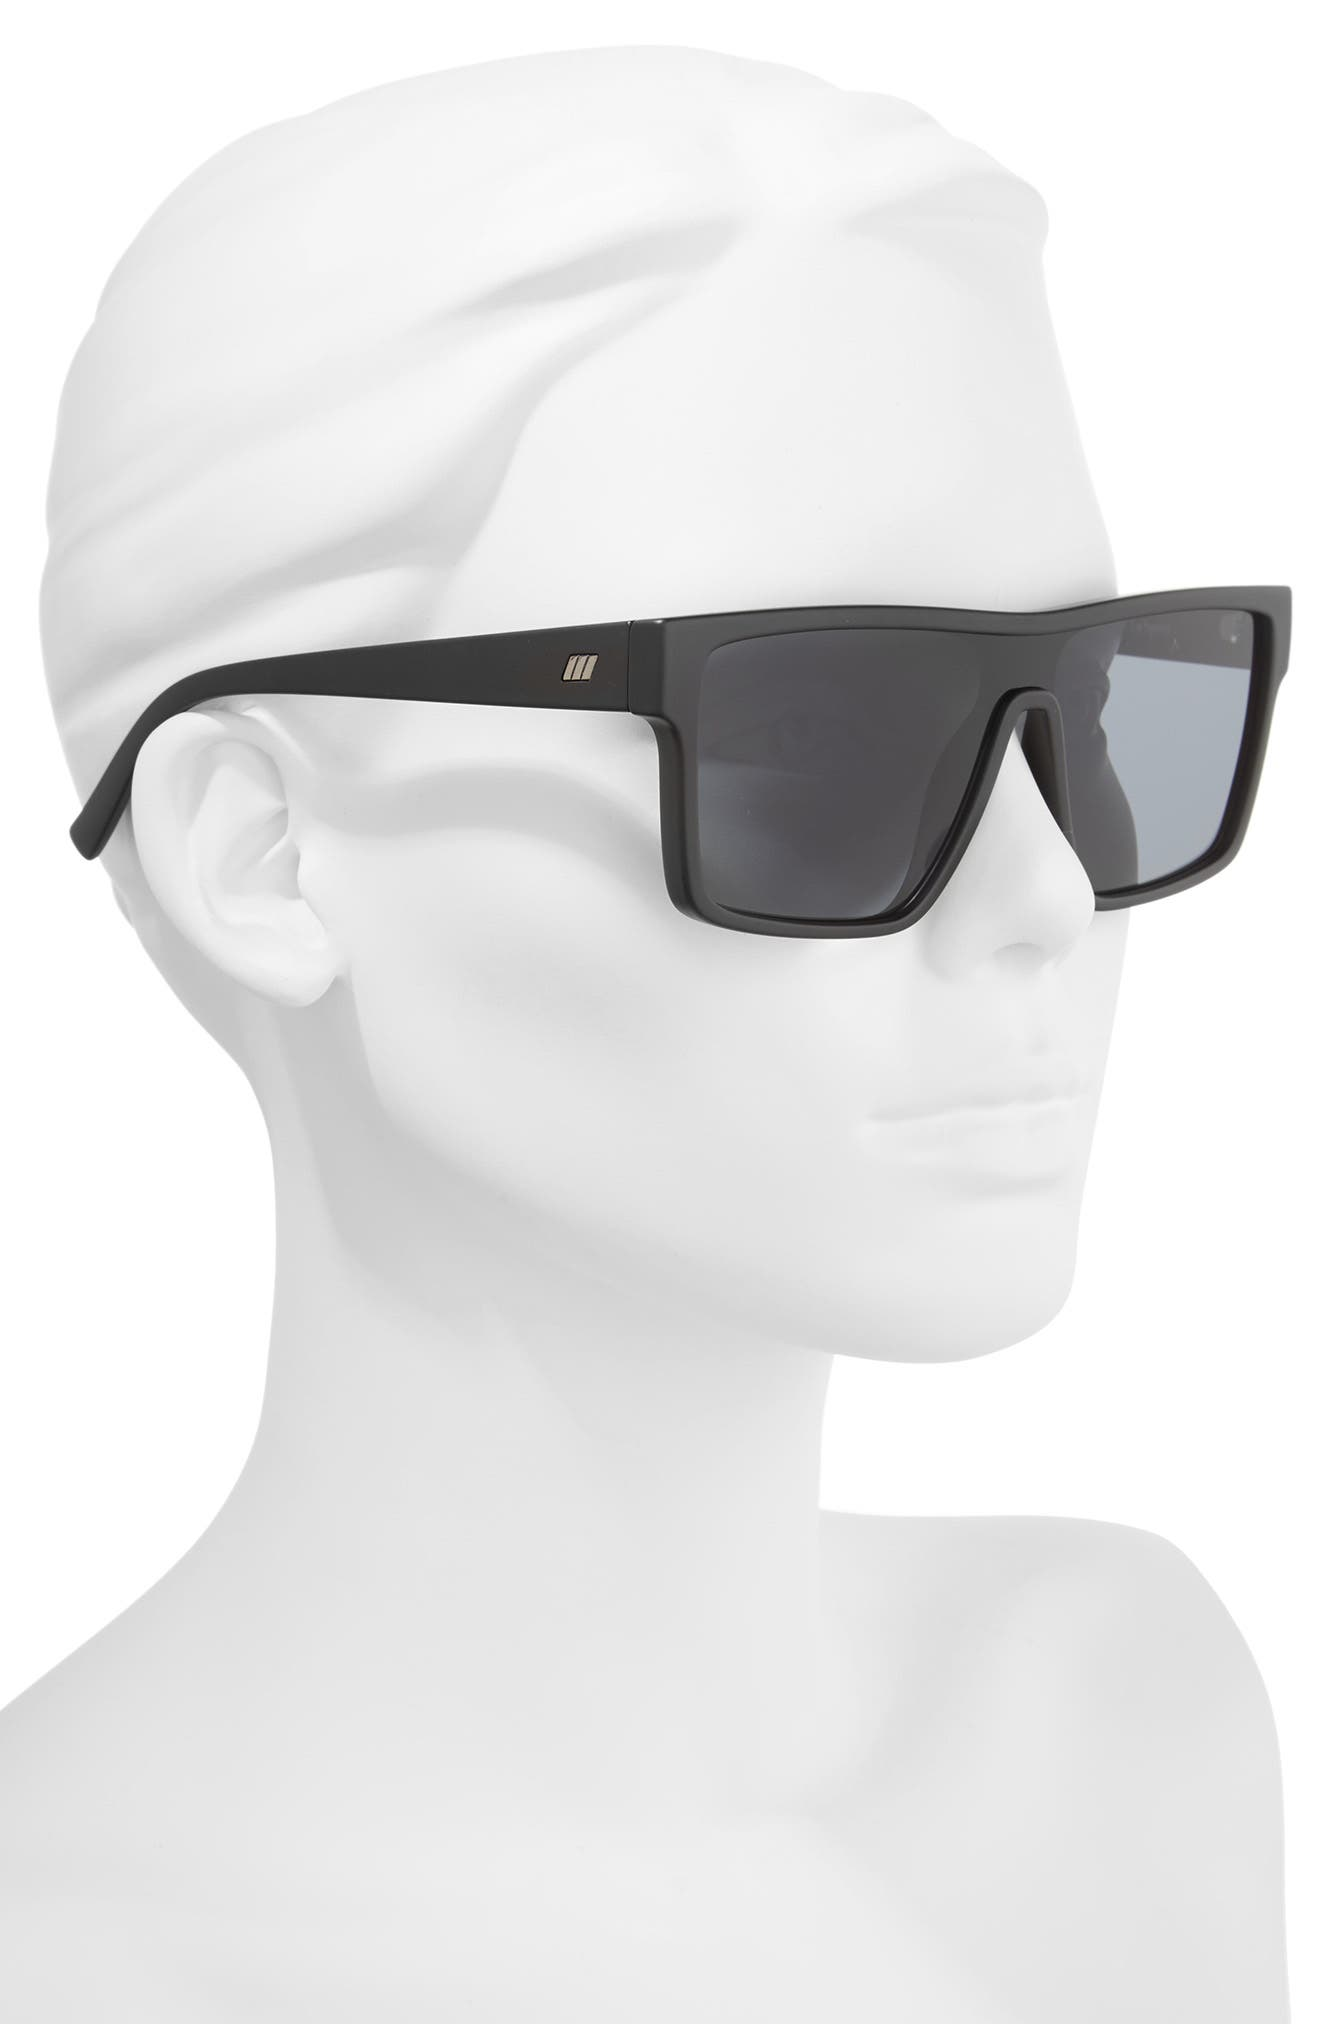 Minimal Magic 54mm Mirror Sunglasses,                             Alternate thumbnail 2, color,                             Matte Black